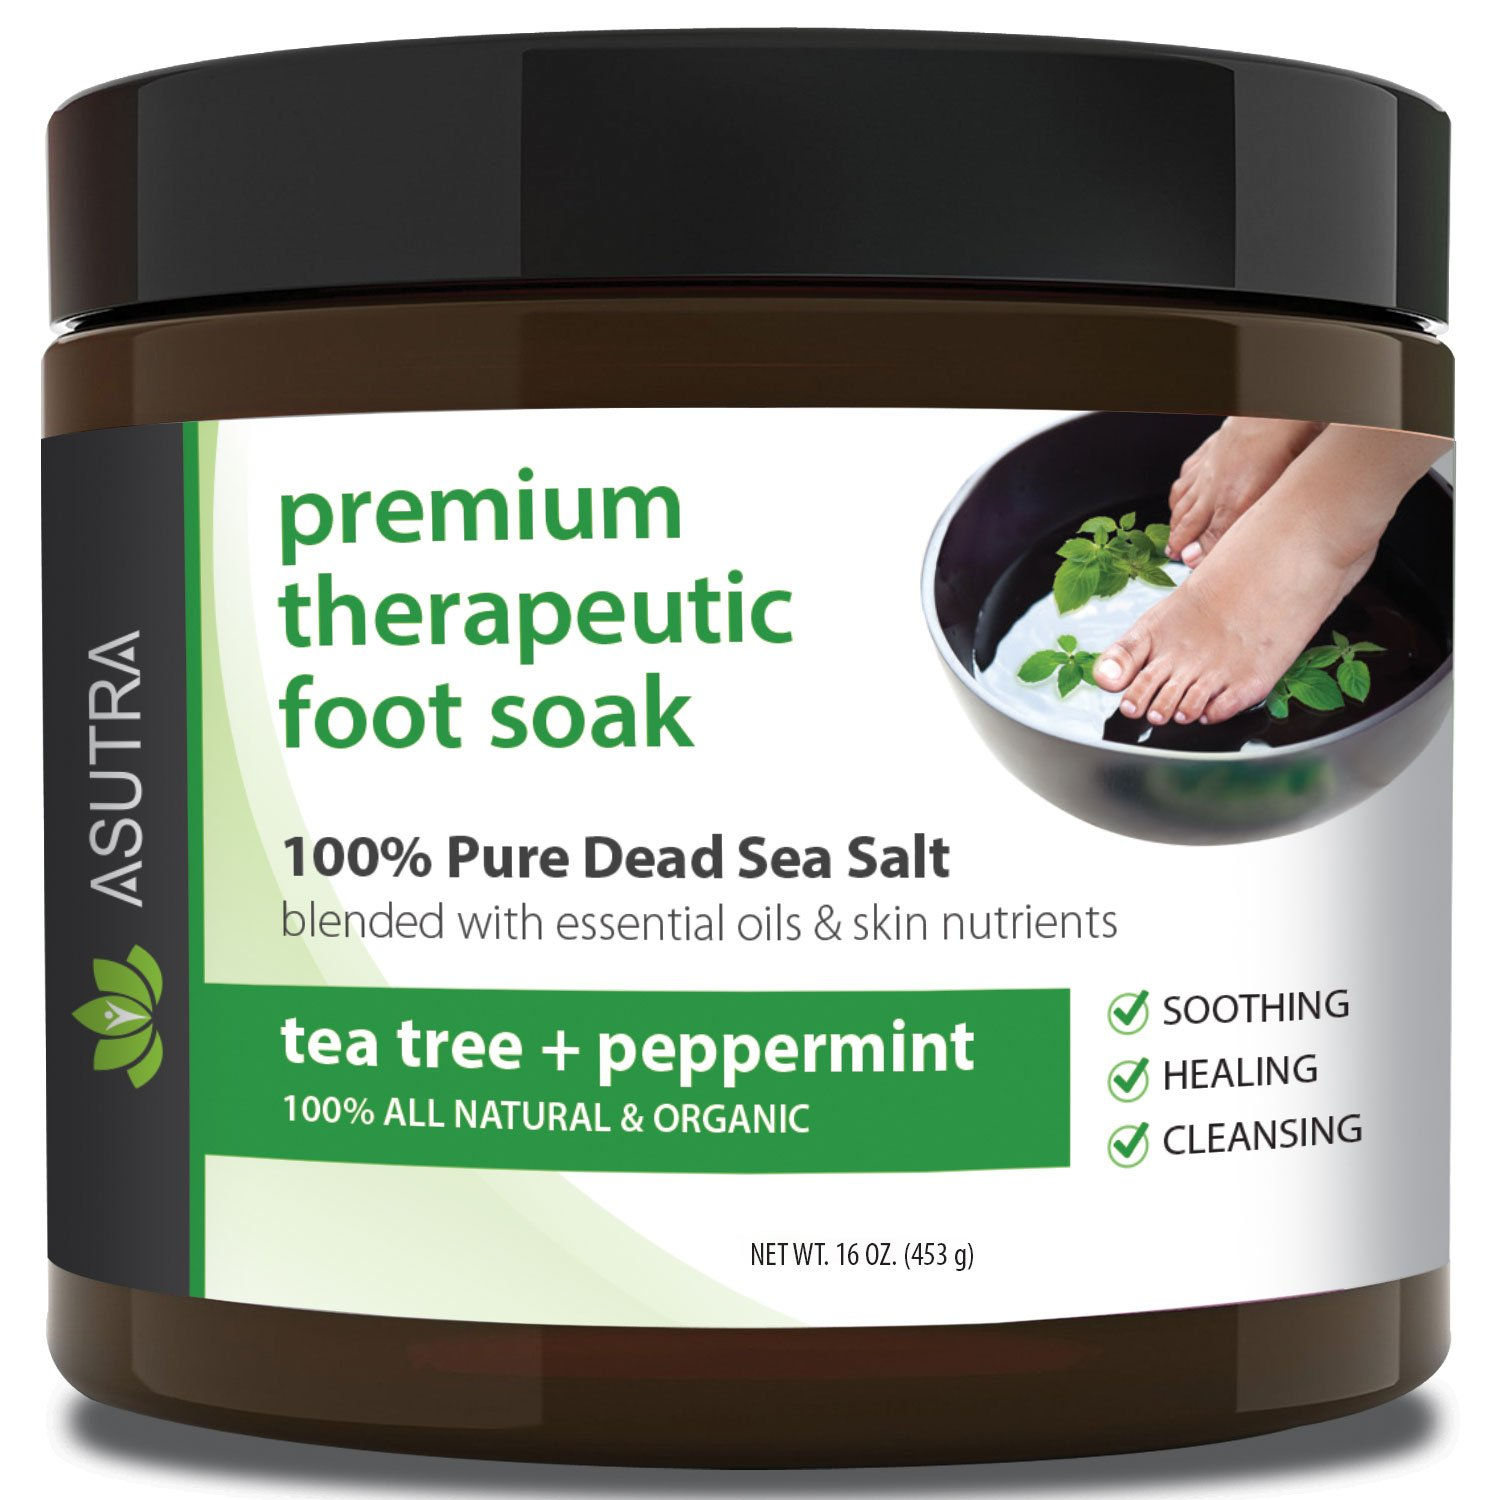 Premium Therapeutic Foot Soak